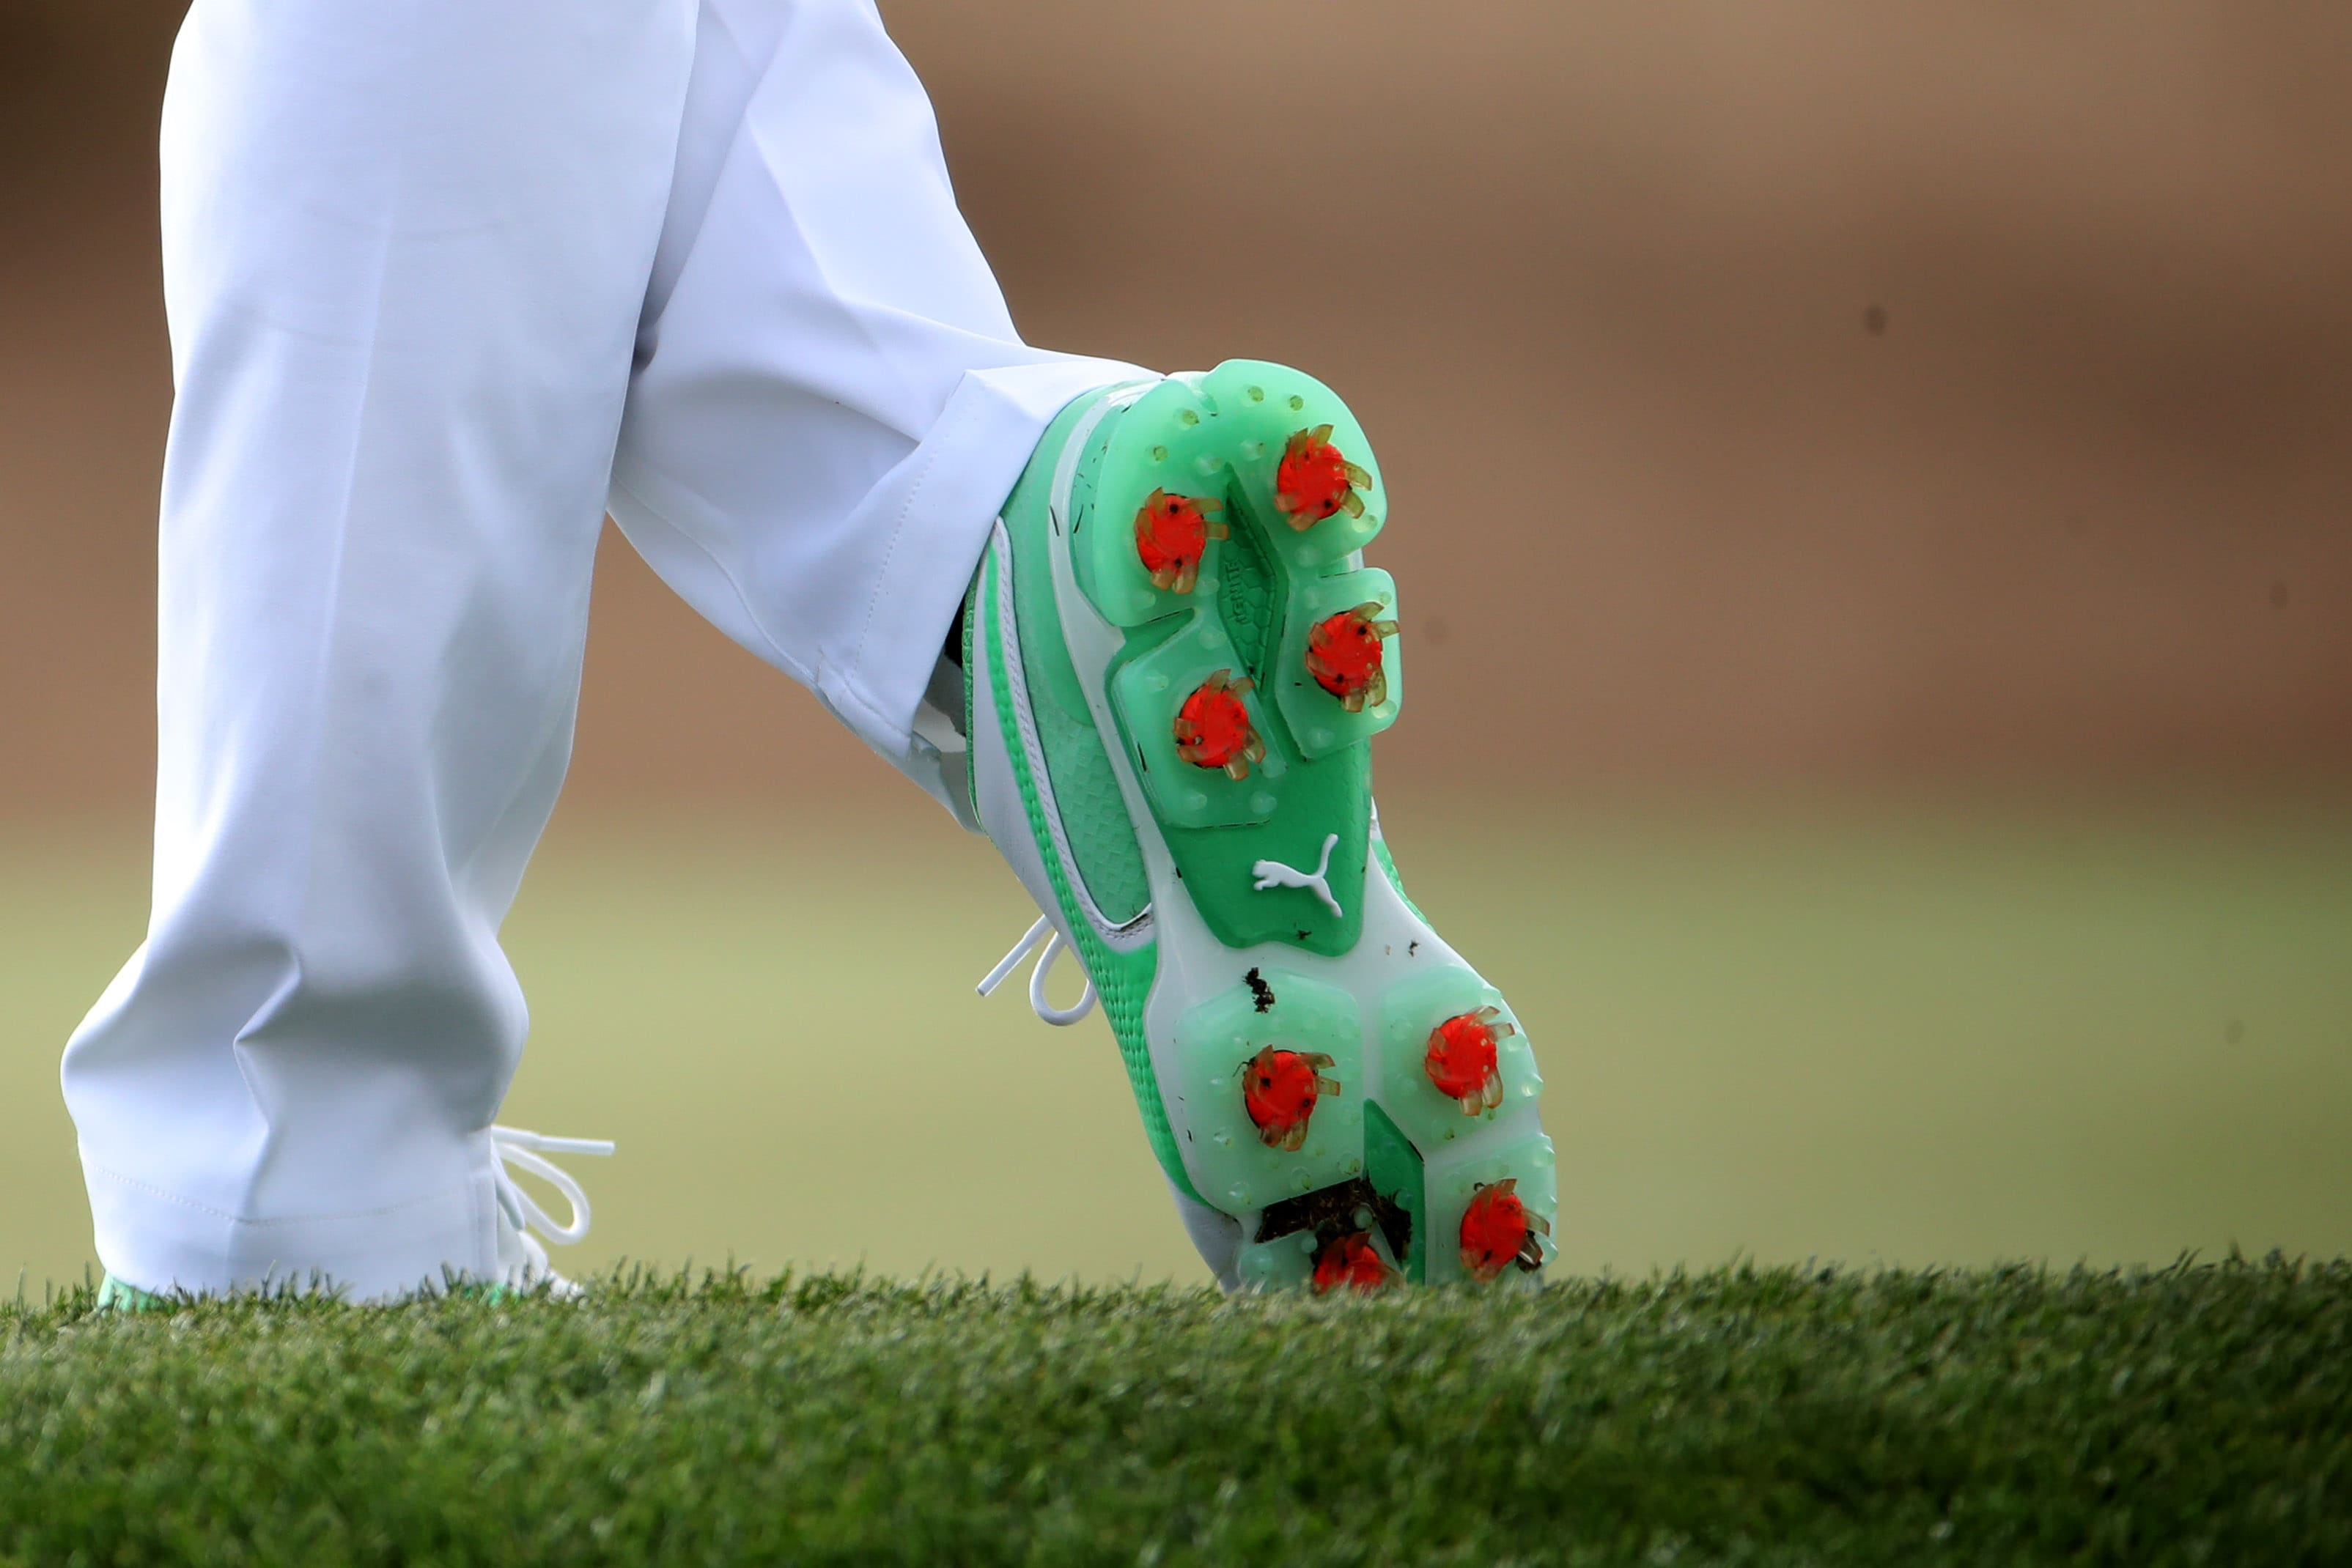 Rickie Fowler's shoes